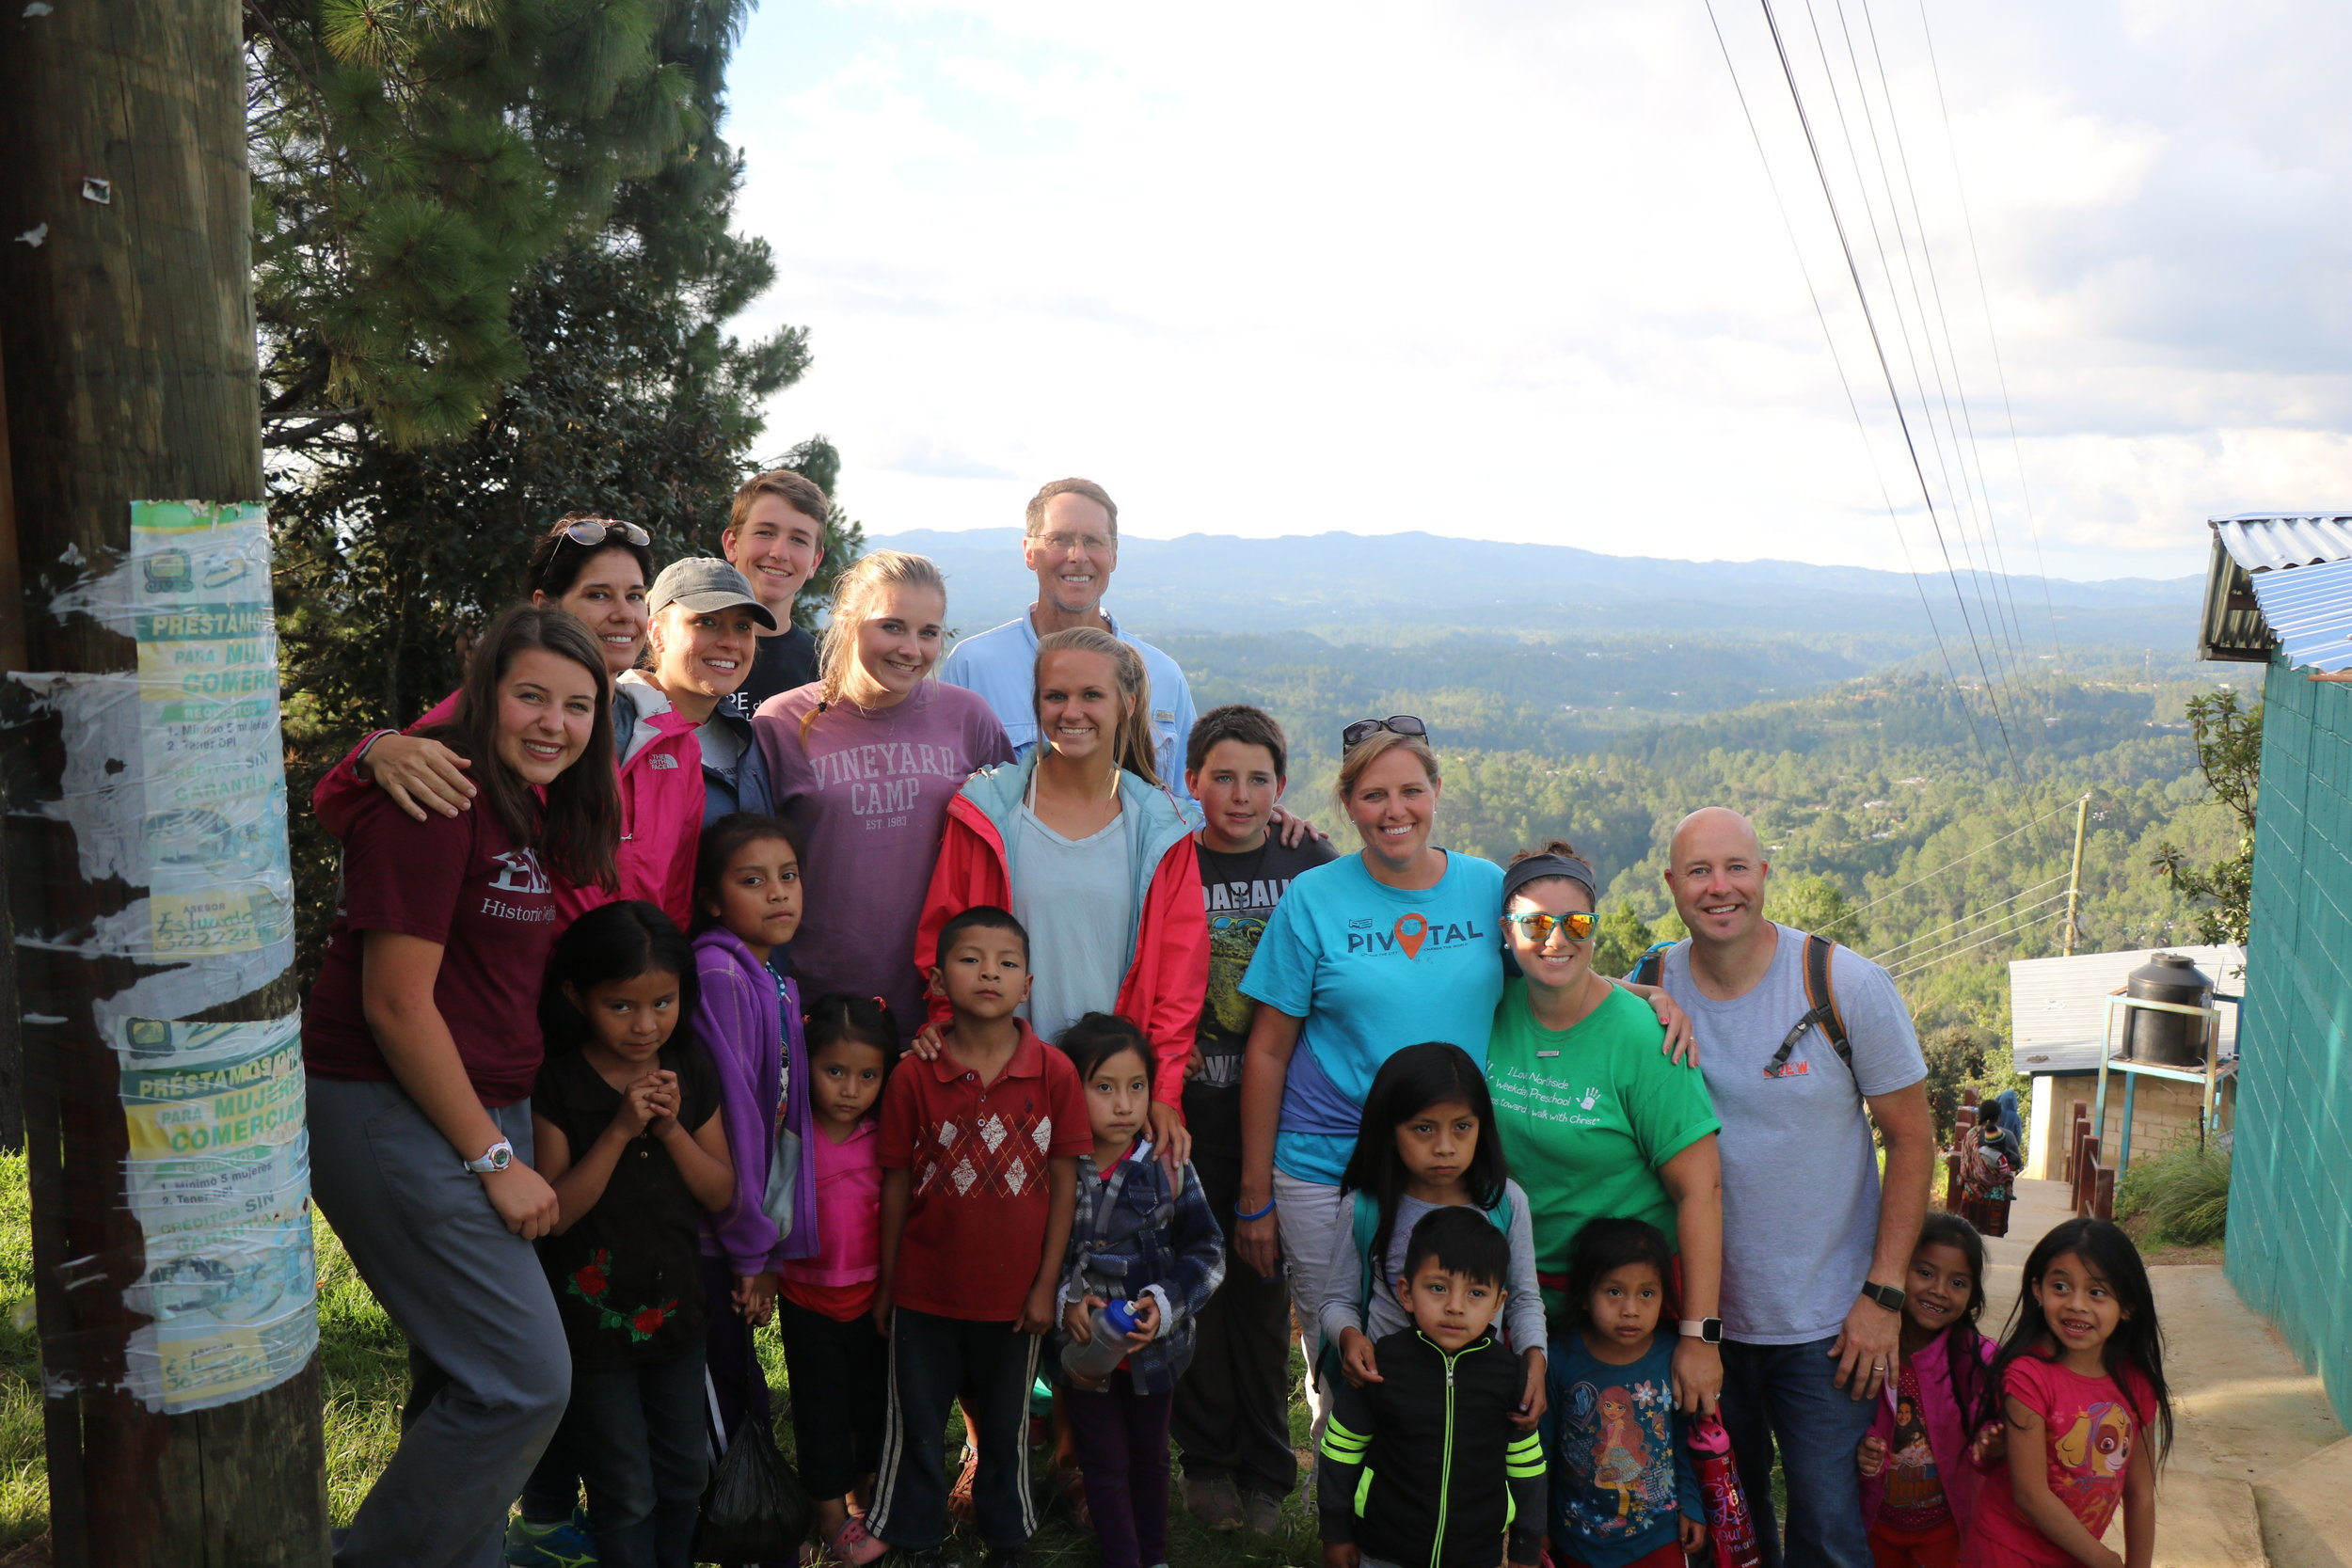 Building a Doorway for the Gospel - Our Leland Campus Pastor, Don Brown, and his family embarked with 6 other PC3 attenders to share the Good News of Jesus in Chichicastenango, Gautemala. His daughter, Maggie, shares the team's story here.